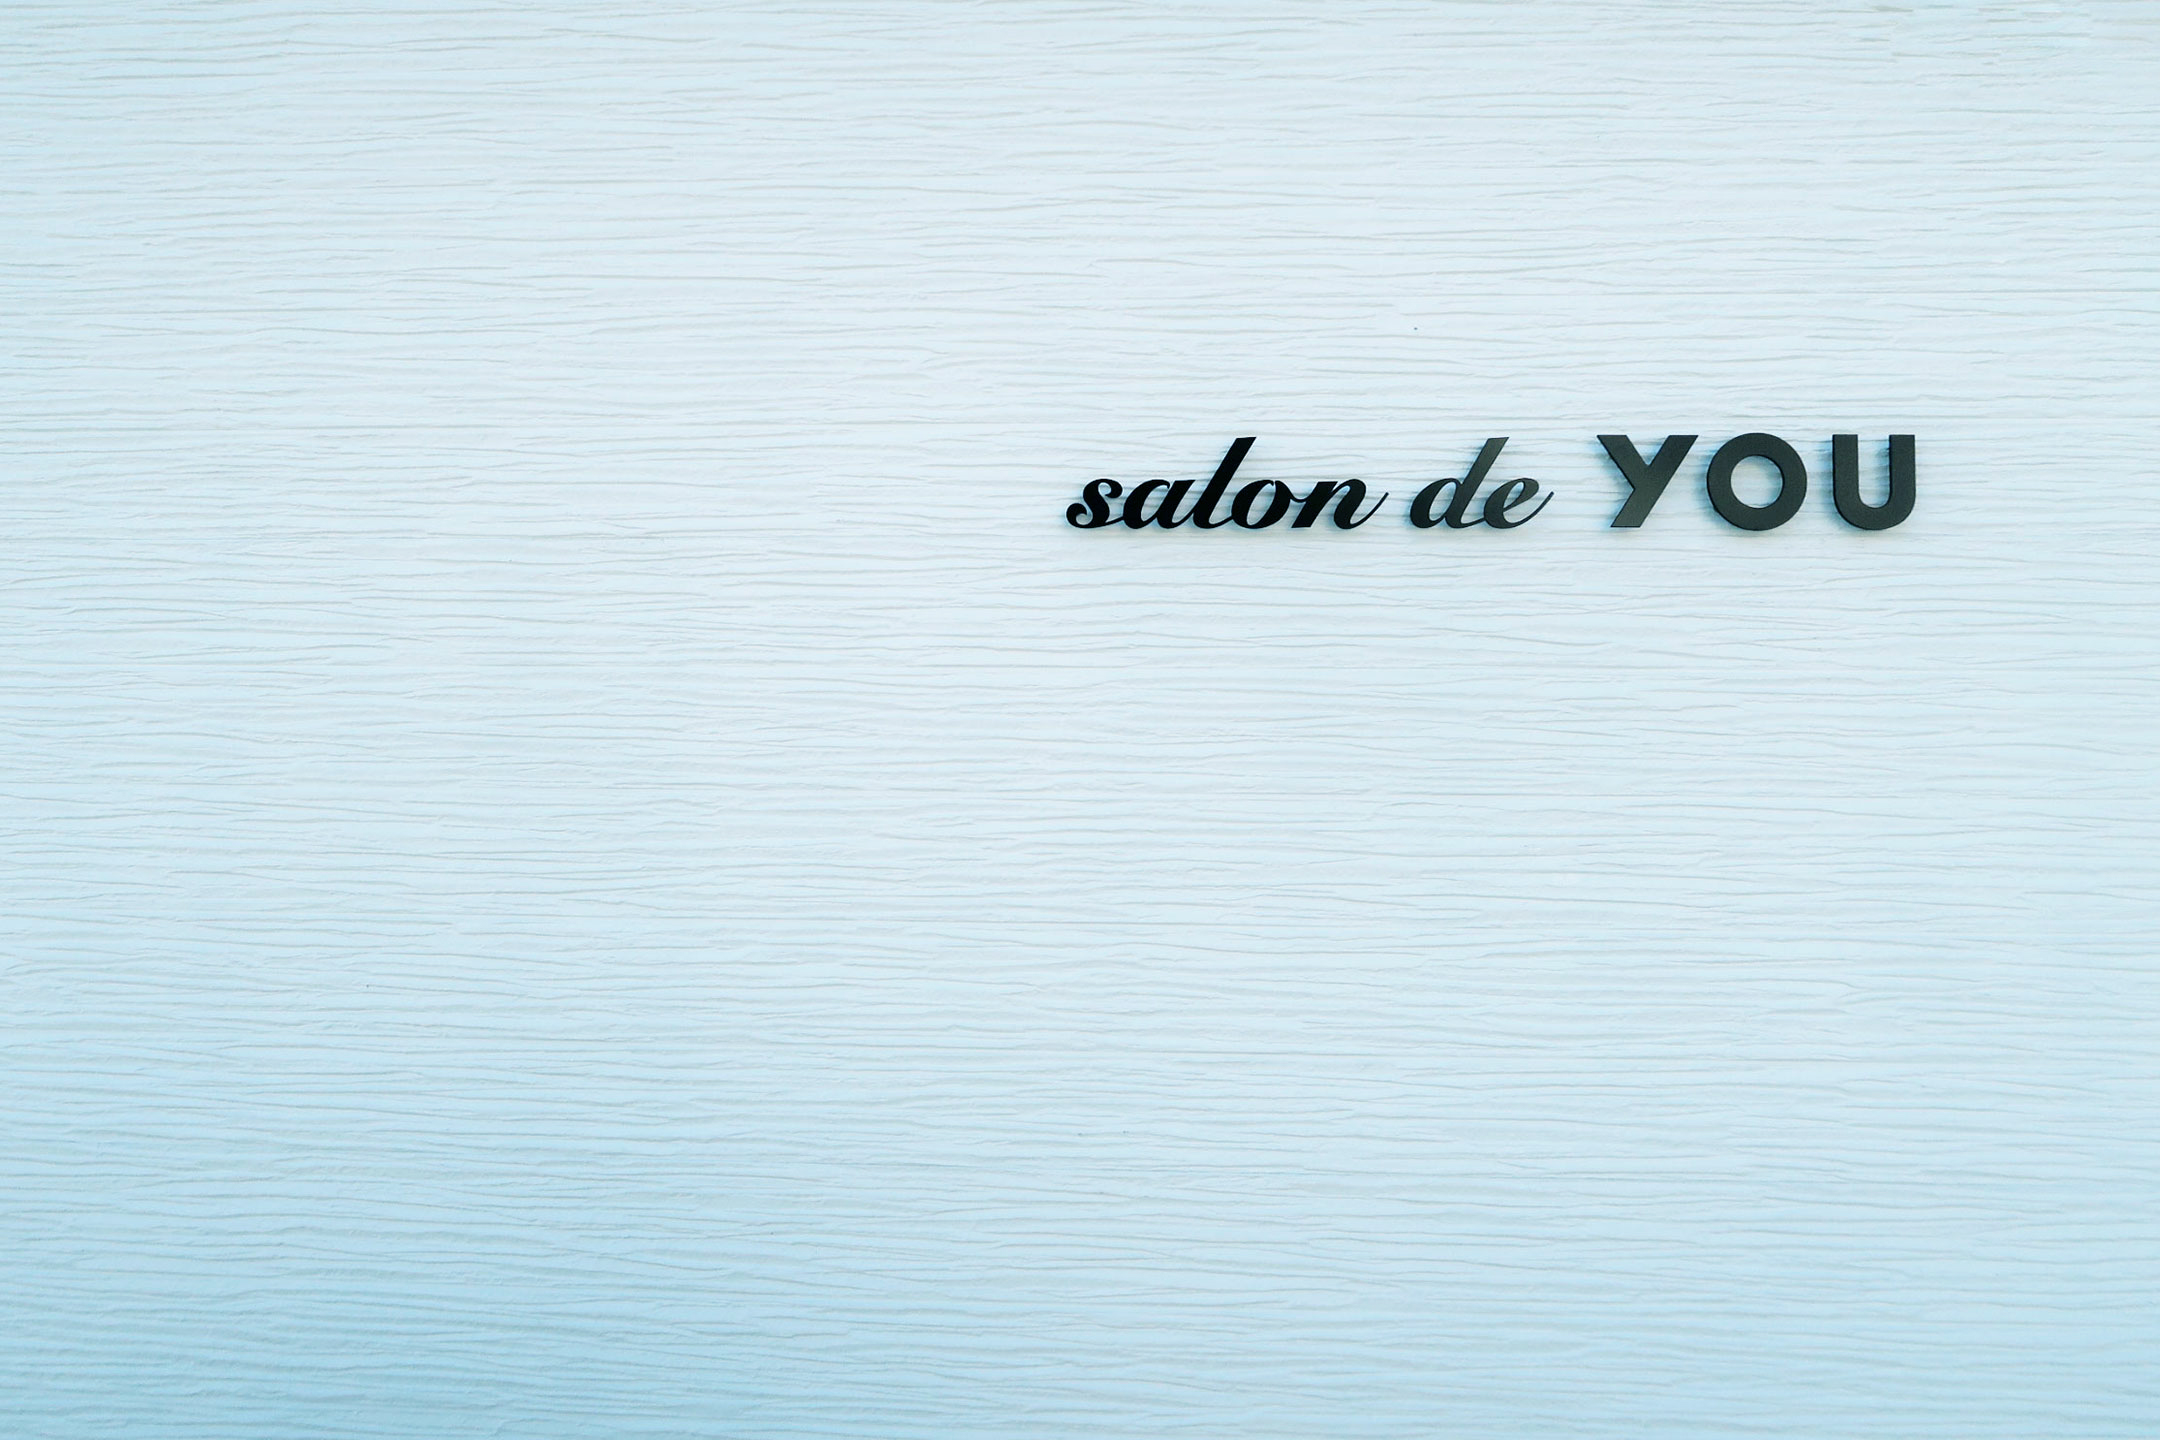 salon de YOU 2